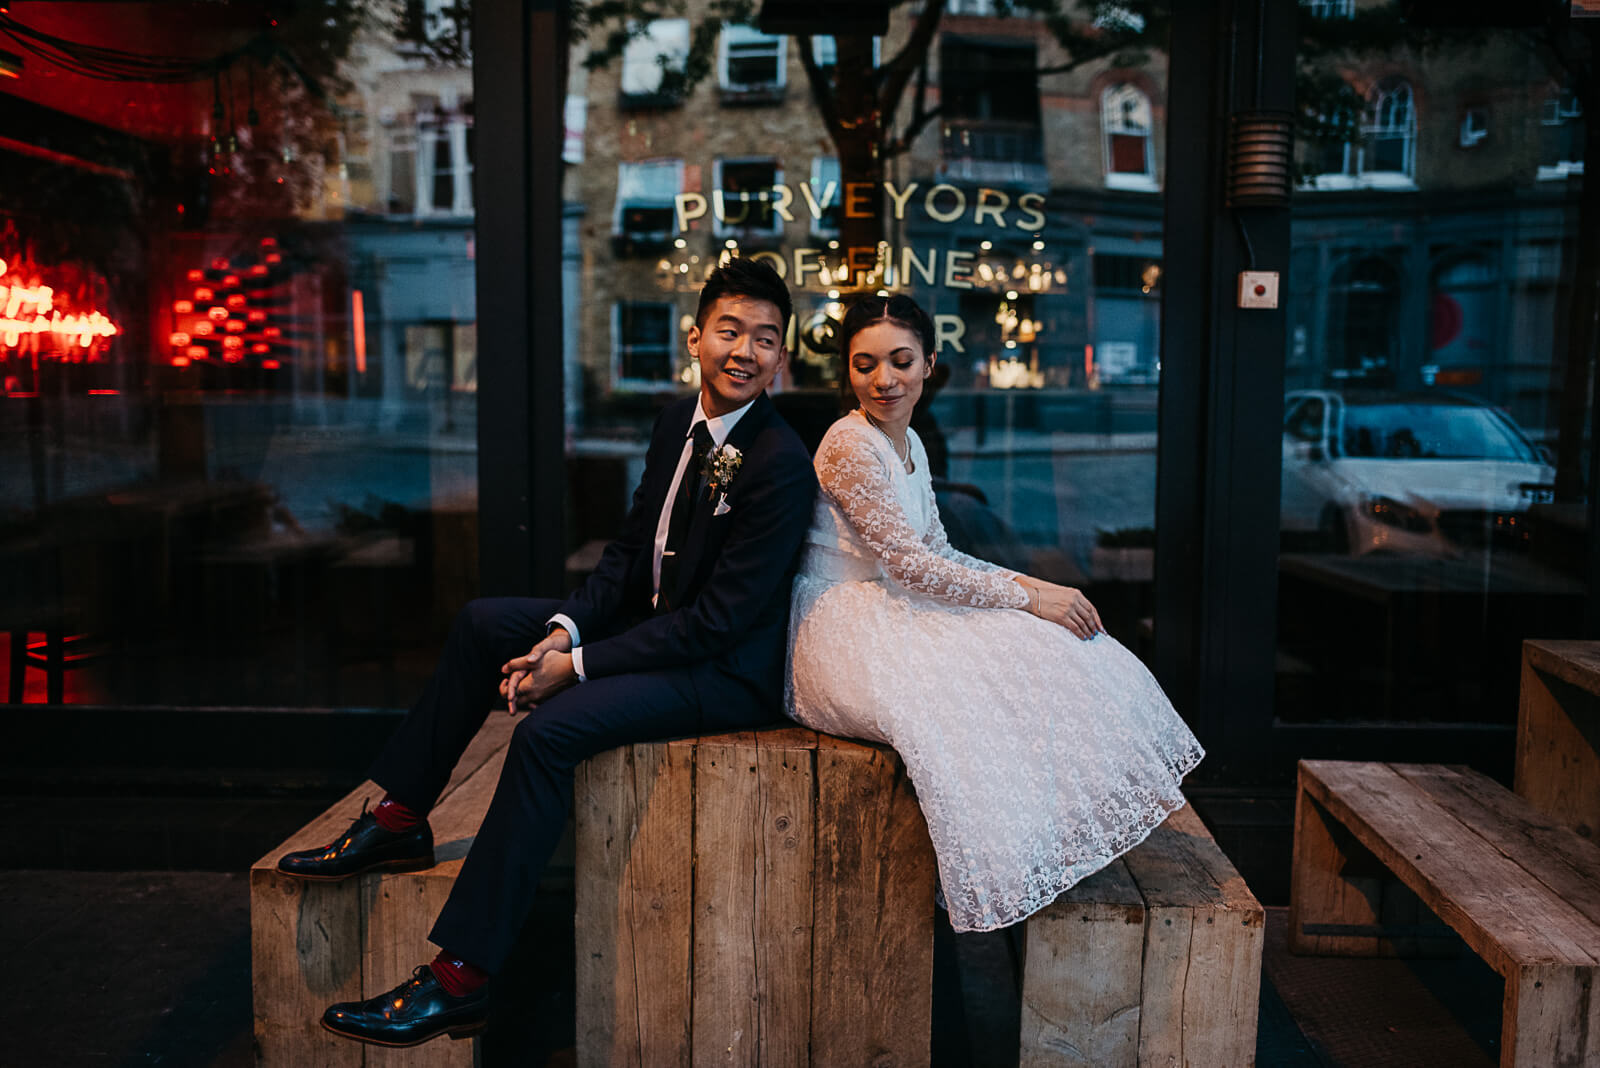 Bride & Groom at dusk outside liquor bar in Islington